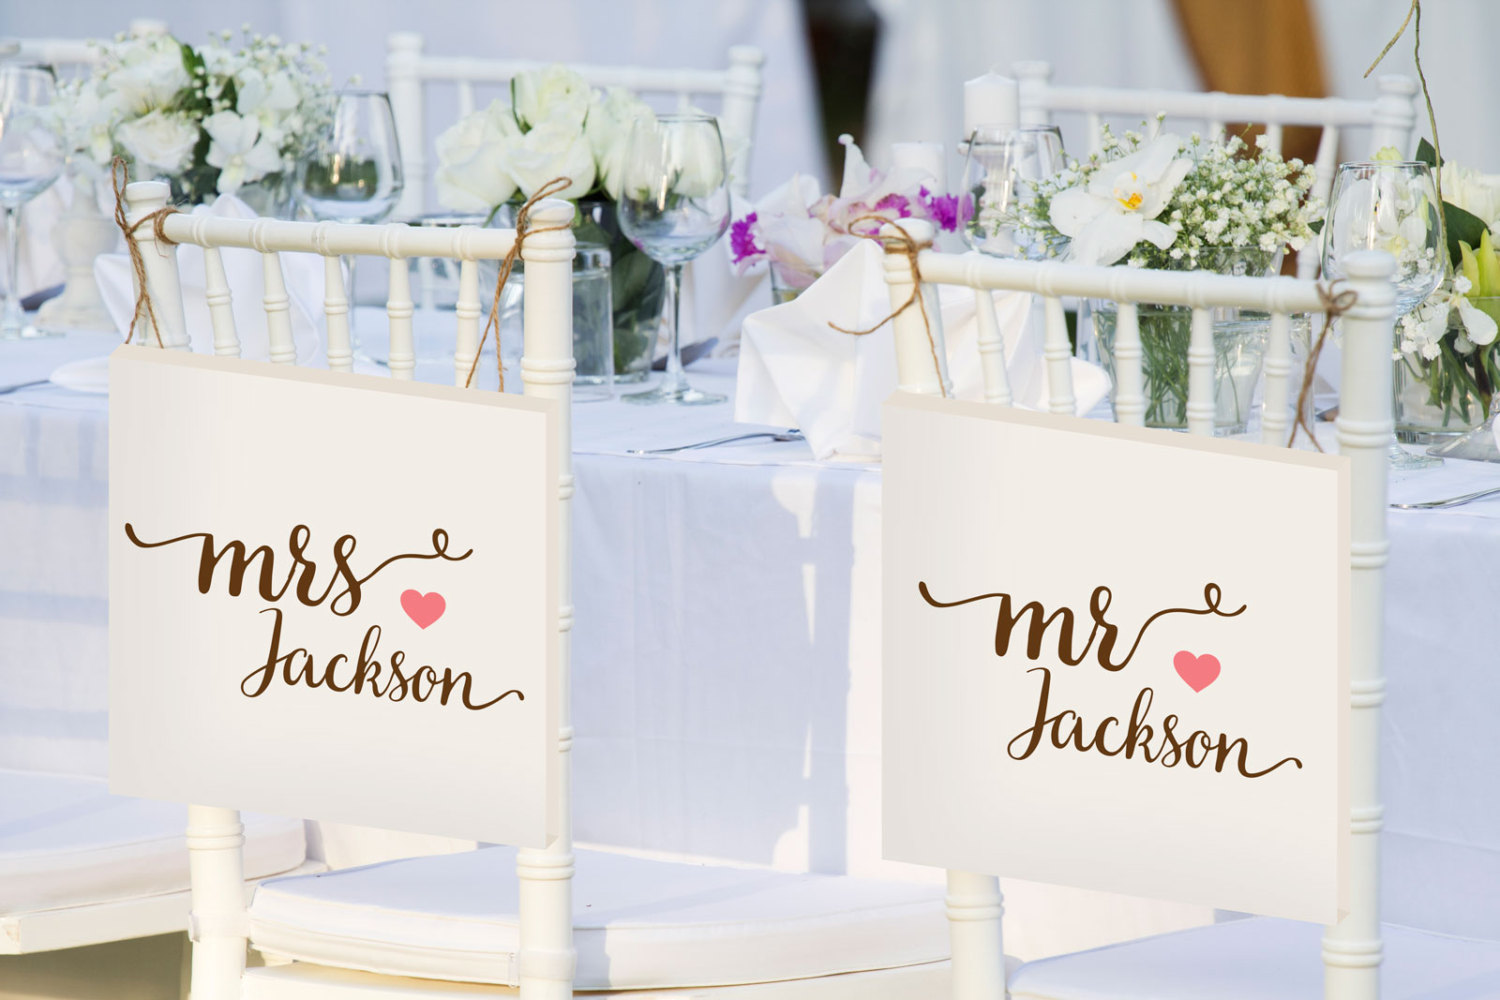 mr and mrs bride and groom chair signs personalized | via bride and groom chair signs https://emmalinebride.com/decor/bride-and-groom-chairs/